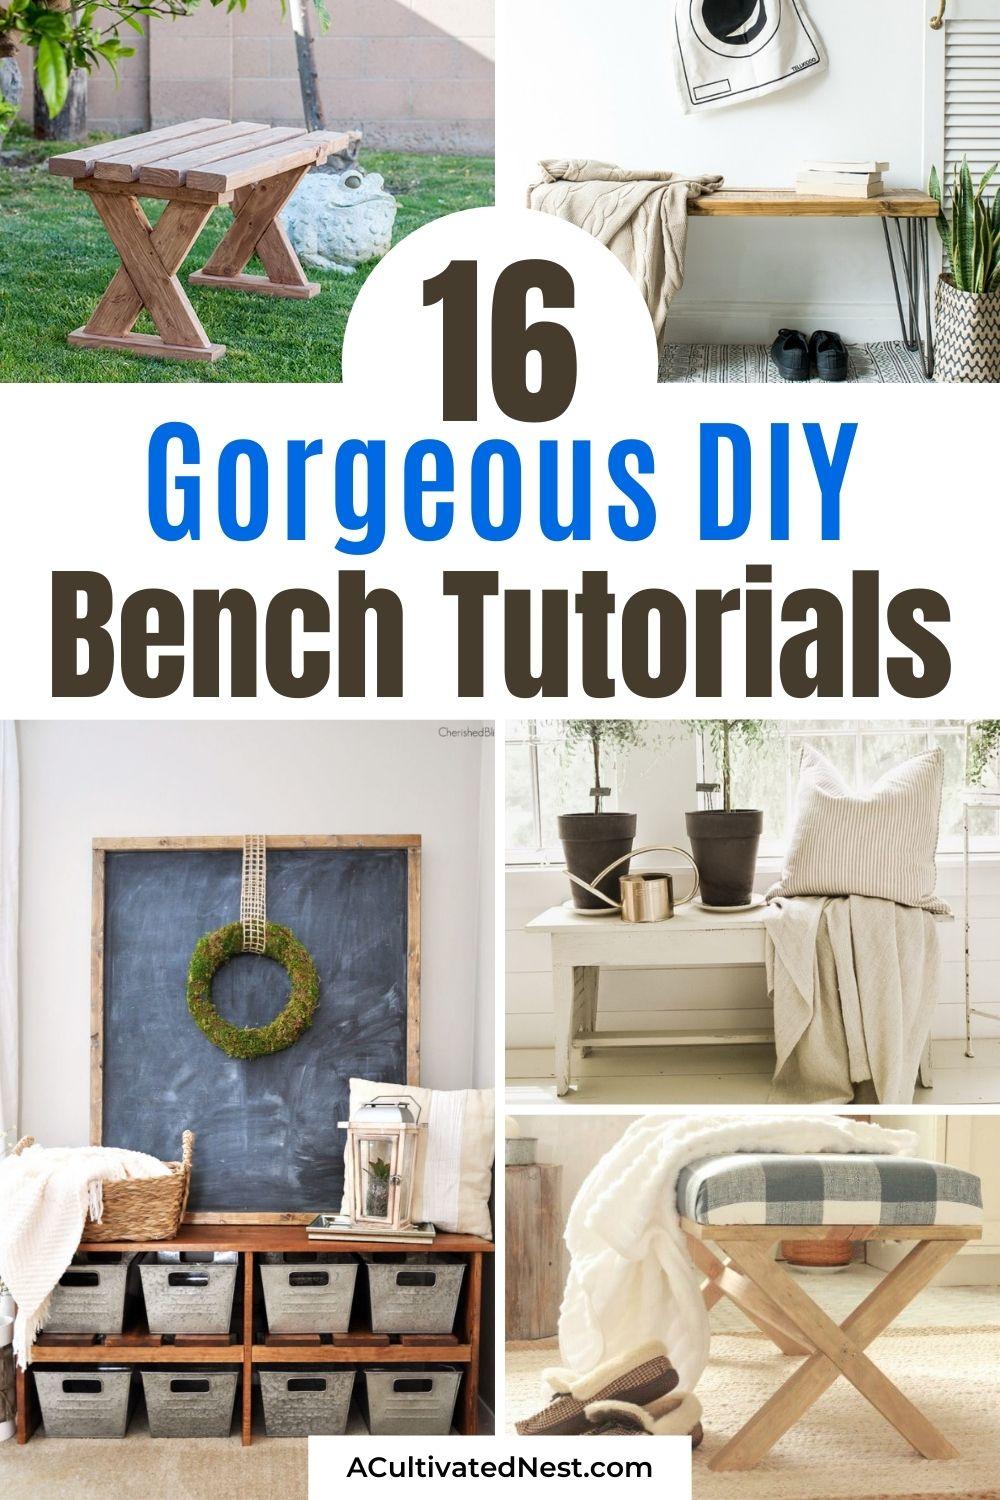 16 Beautiful Homemade DIY Benches- These beautiful homemade DIY benches are easy to make and would look beautiful in any home! They're a great way to update your home's décor on a budget! | #diyProjects #diy #homemadeFurniture #diyBench #ACultivatedNest